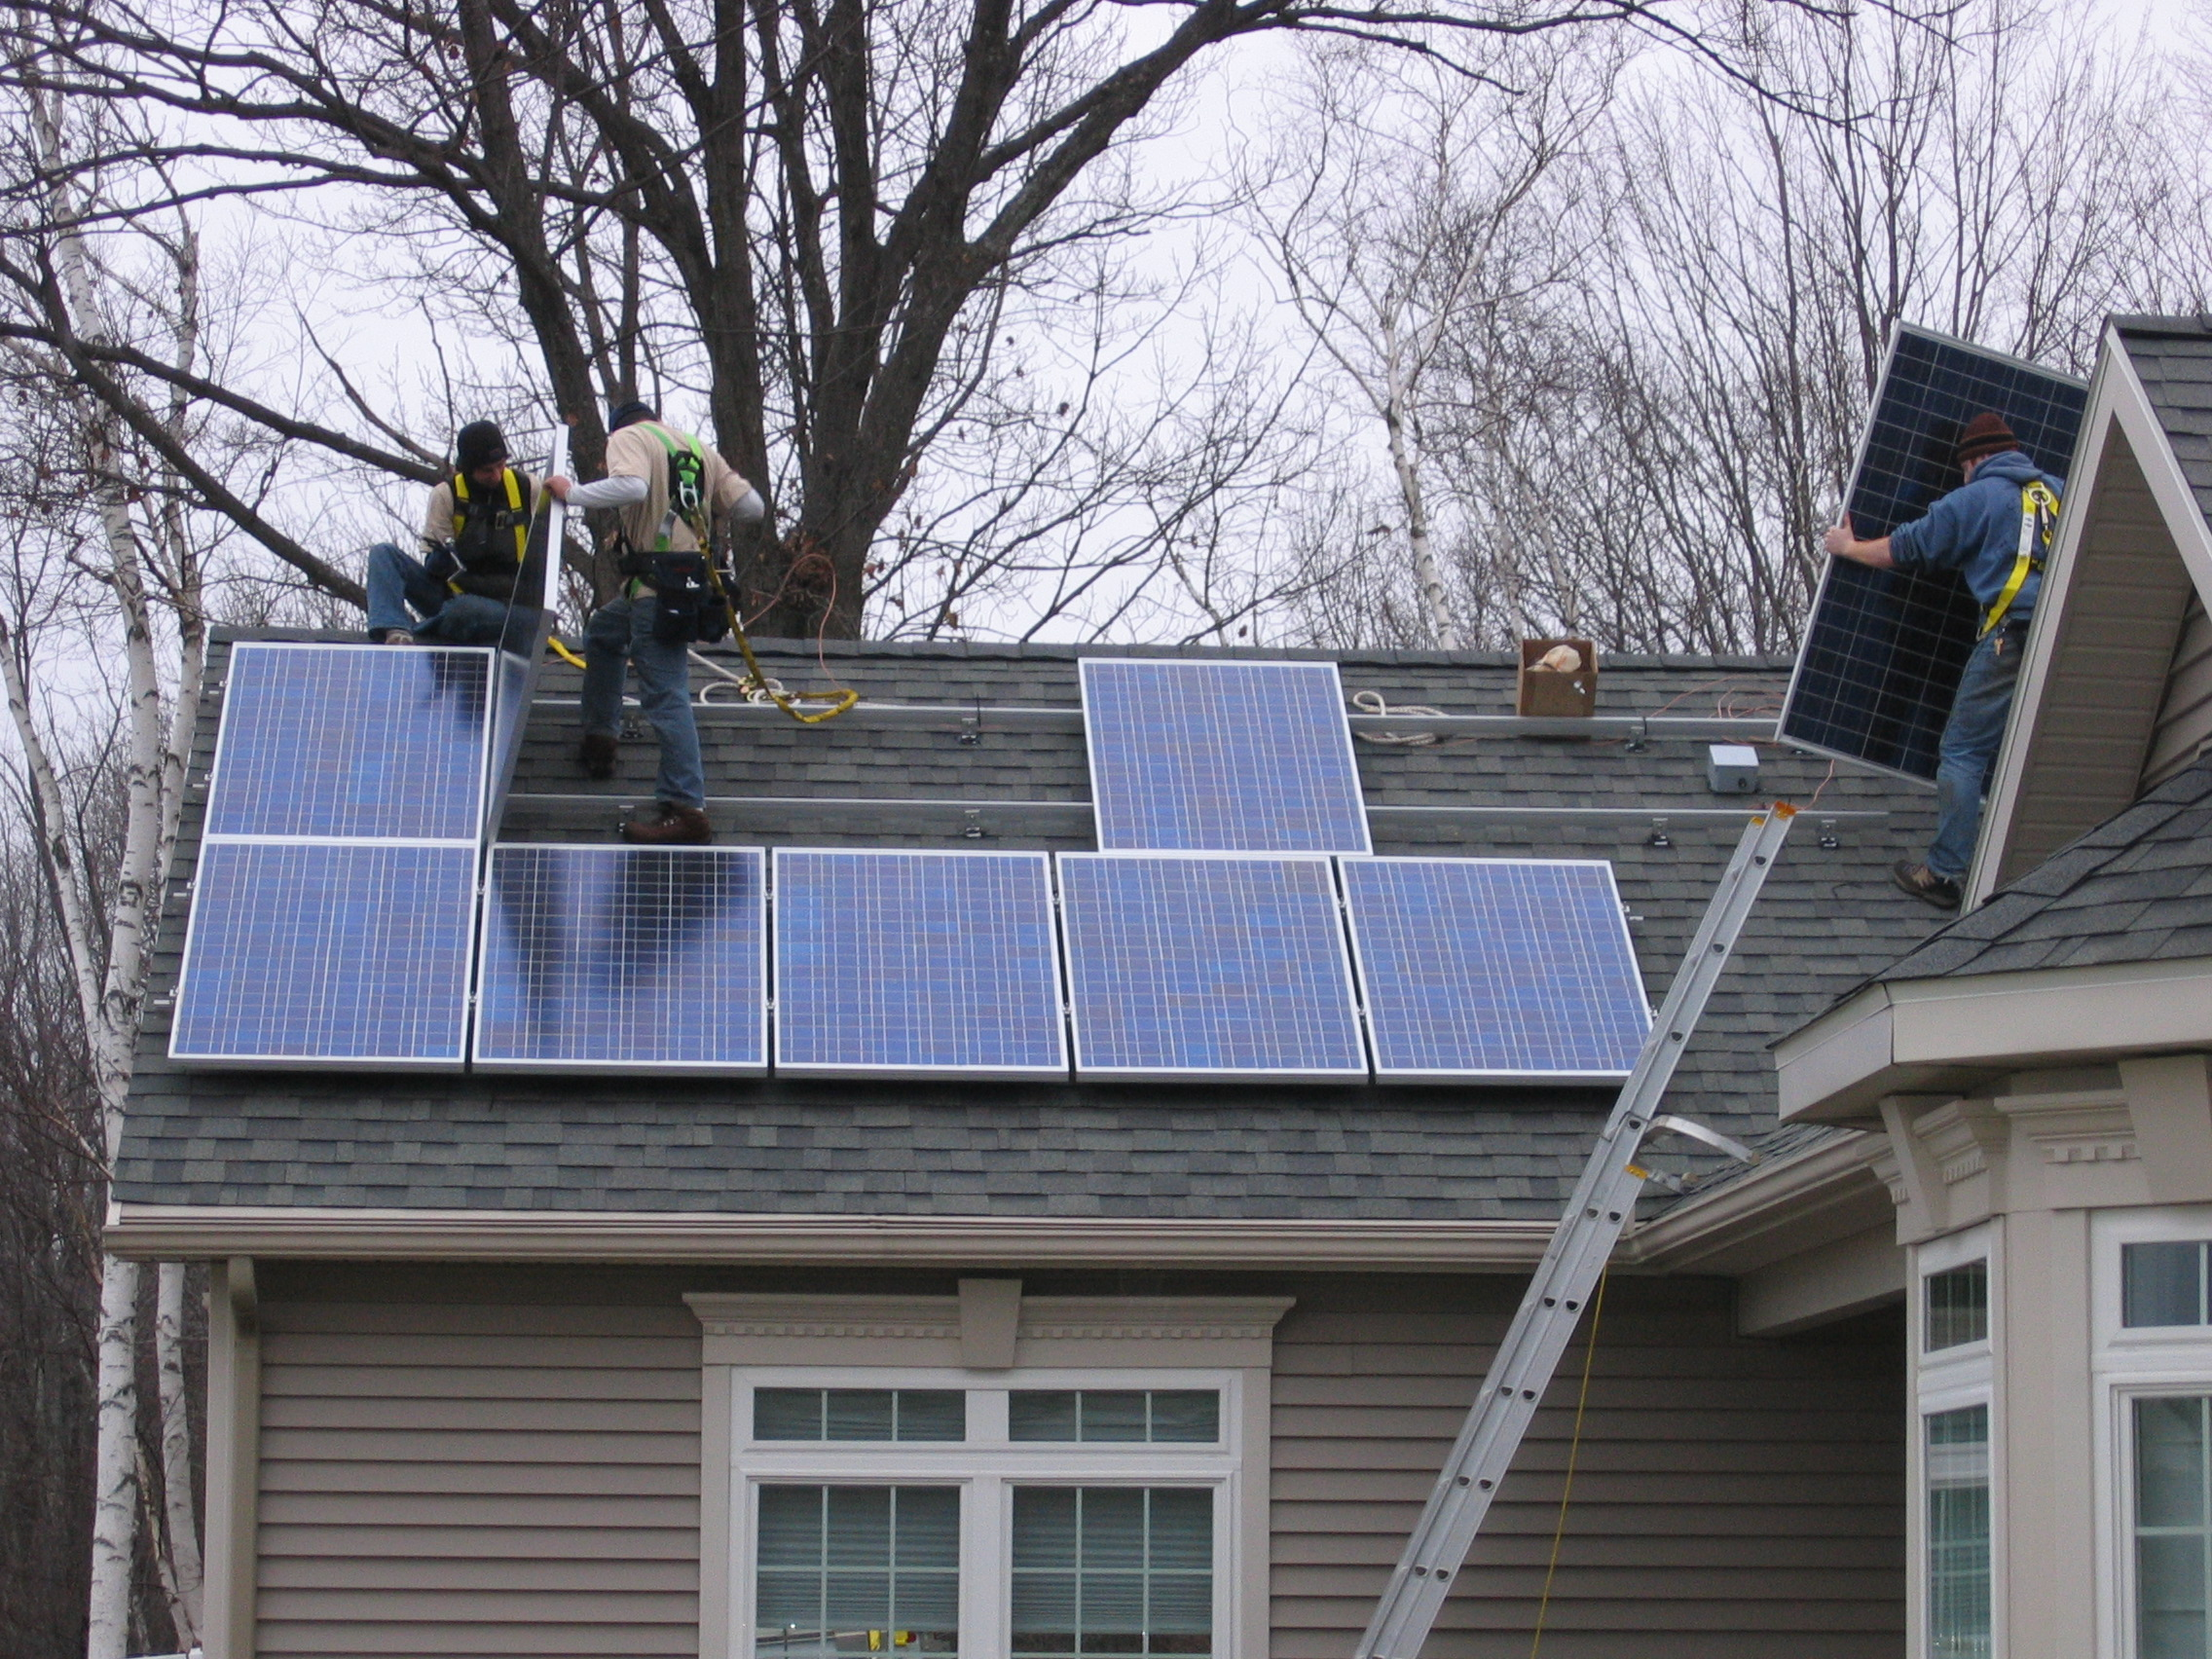 Cost to install solar panels on roof - Cost To Install Solar Panels On Roof 44